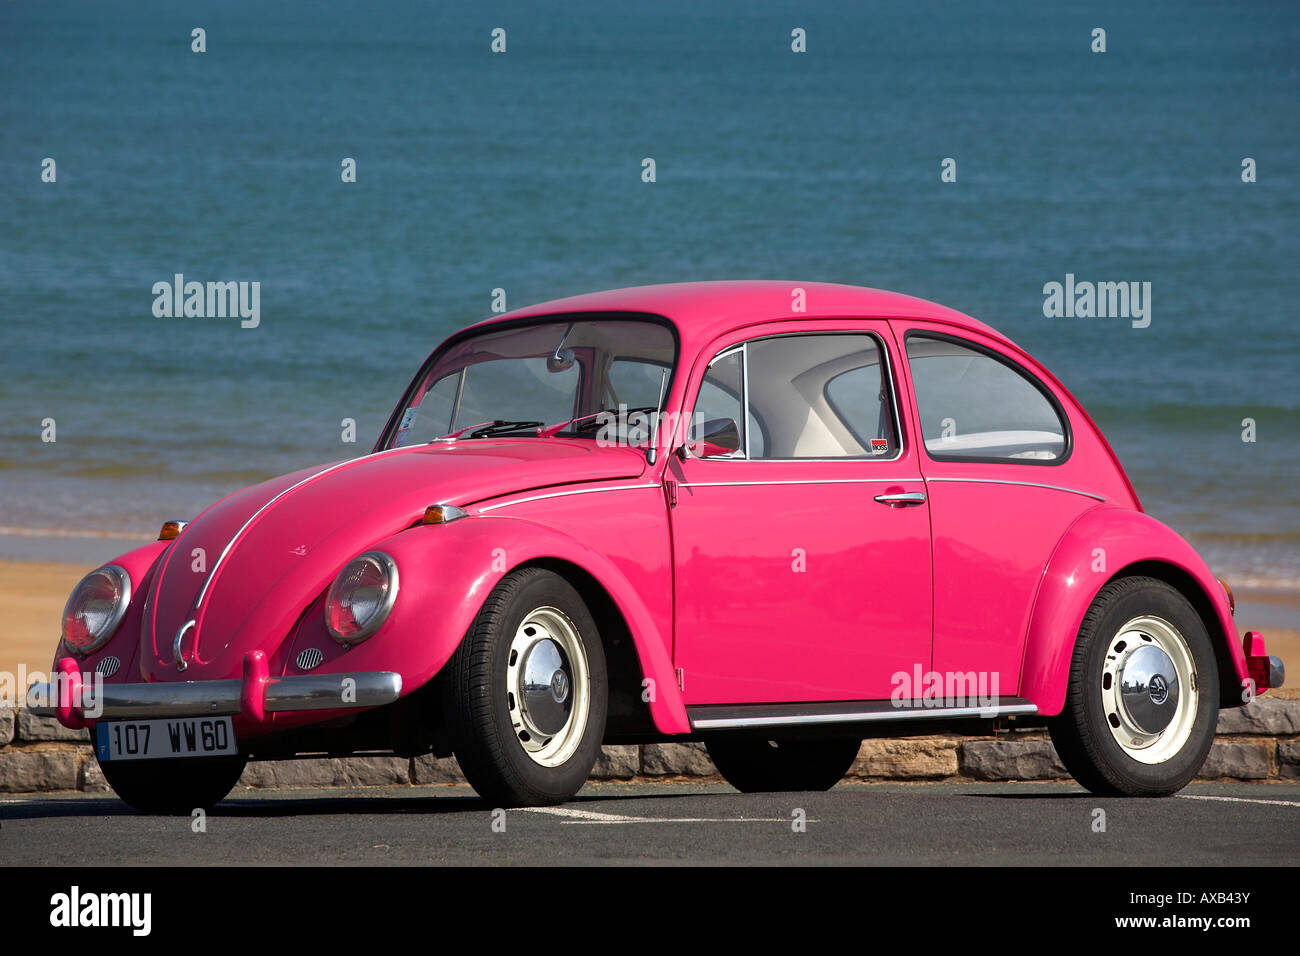 pink vw beetle chippy cox france. owner release ok stock photo